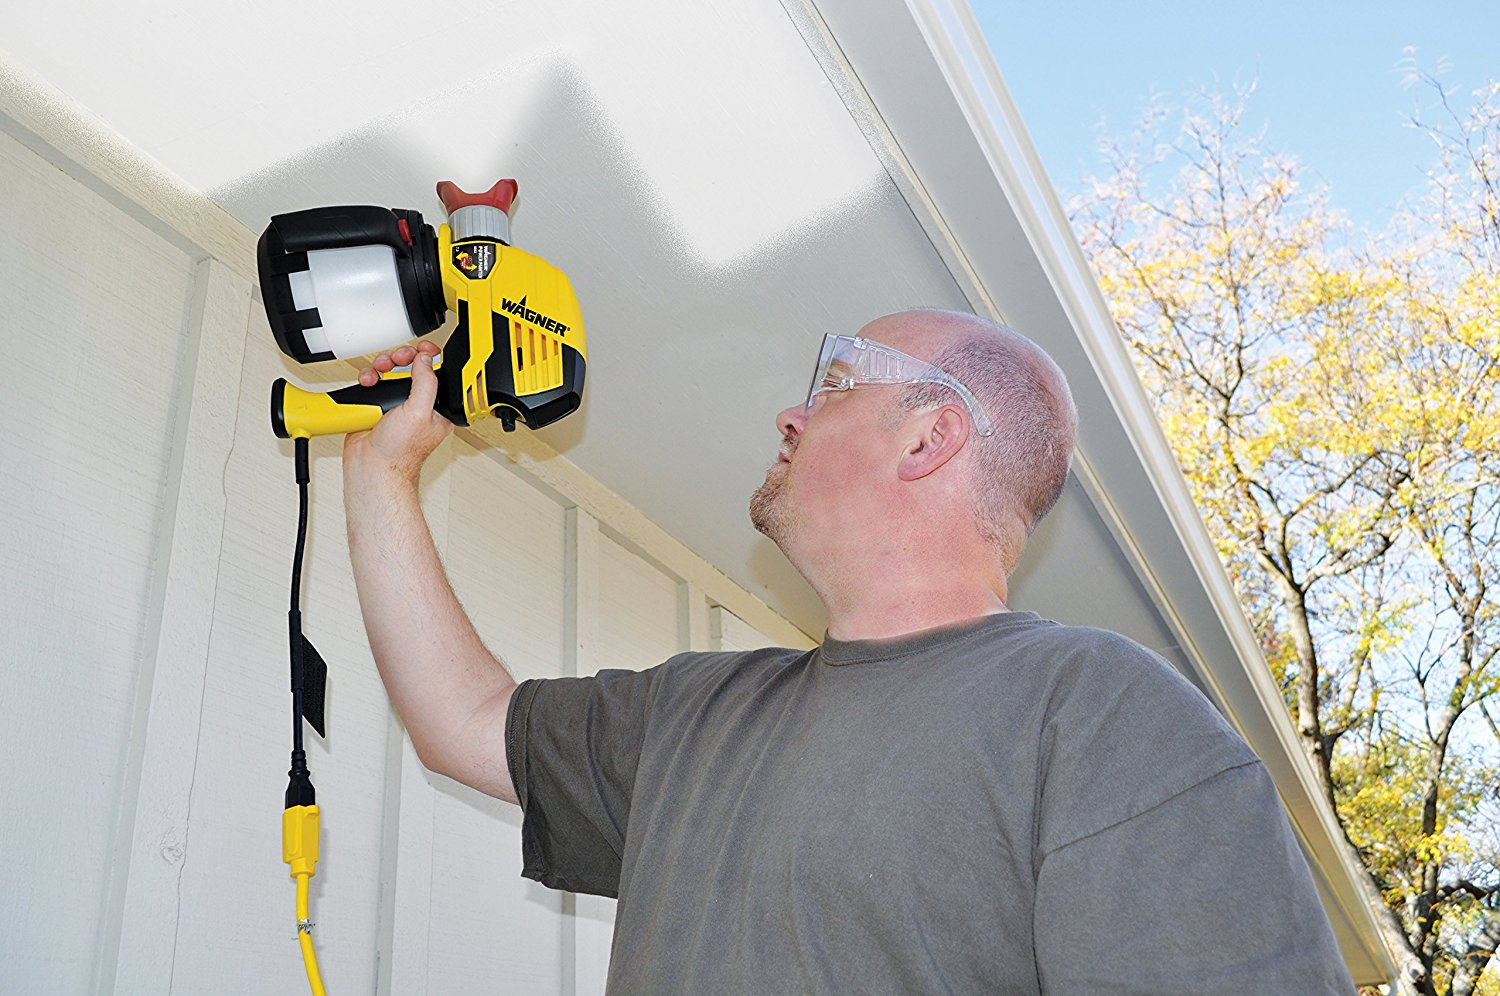 How To Use The Paint Sprayer You Need To Know?